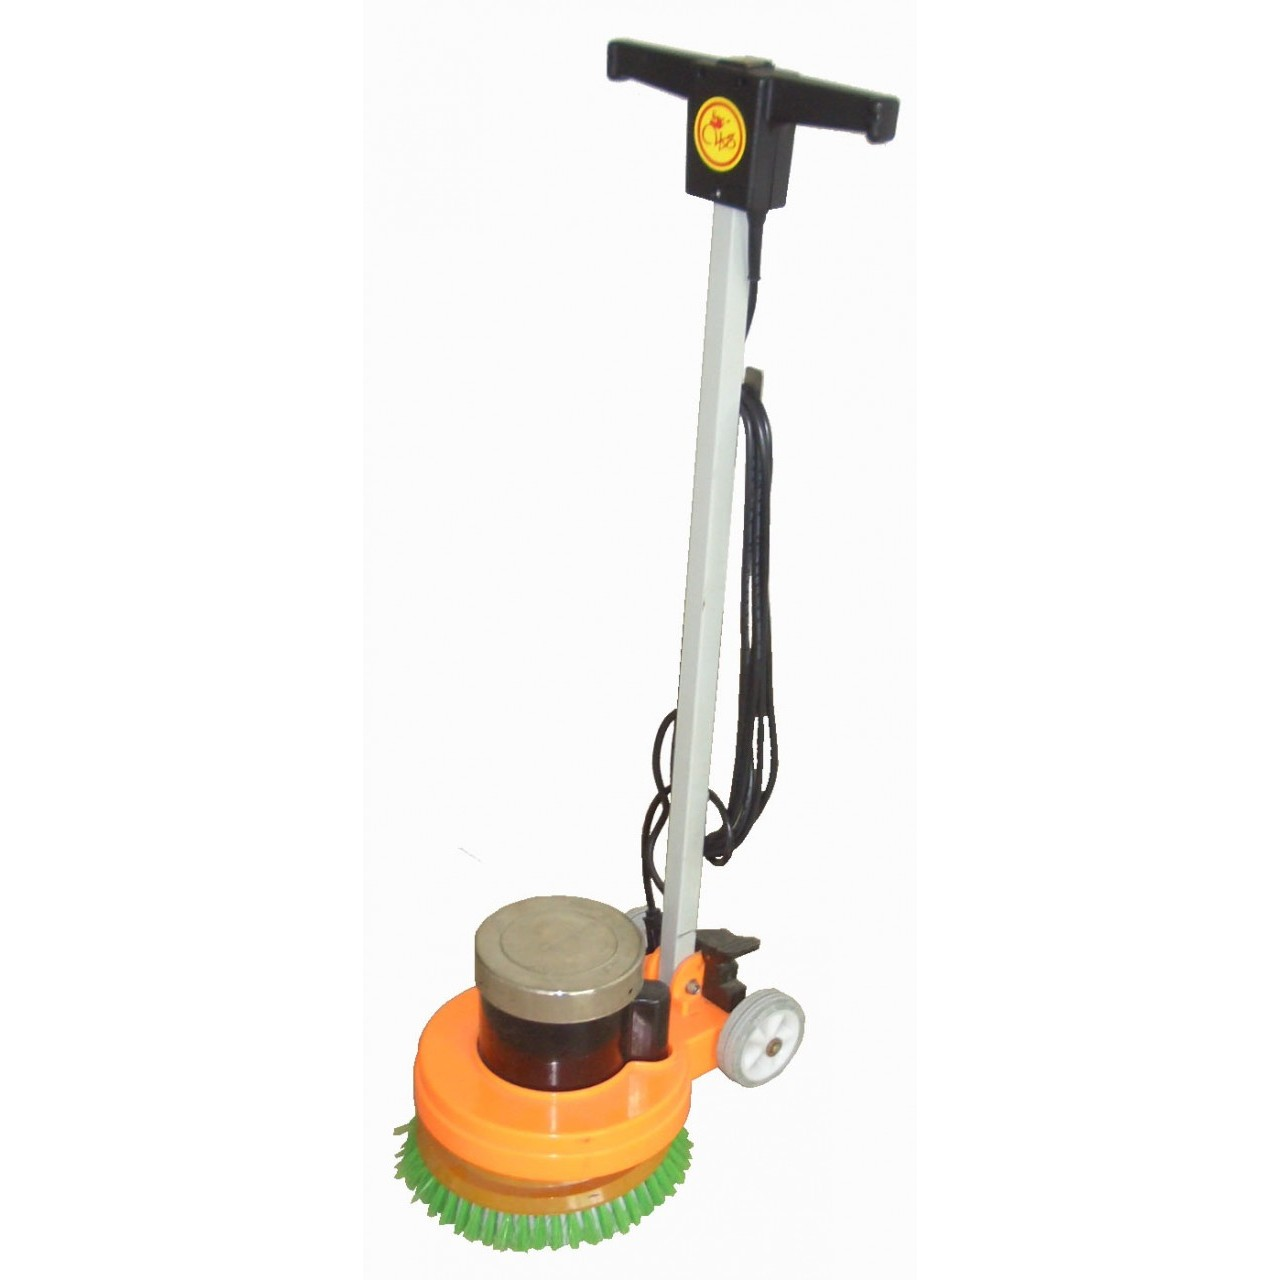 Polystar orbital floor scrubber brisbane wholesale for Floor scrubber